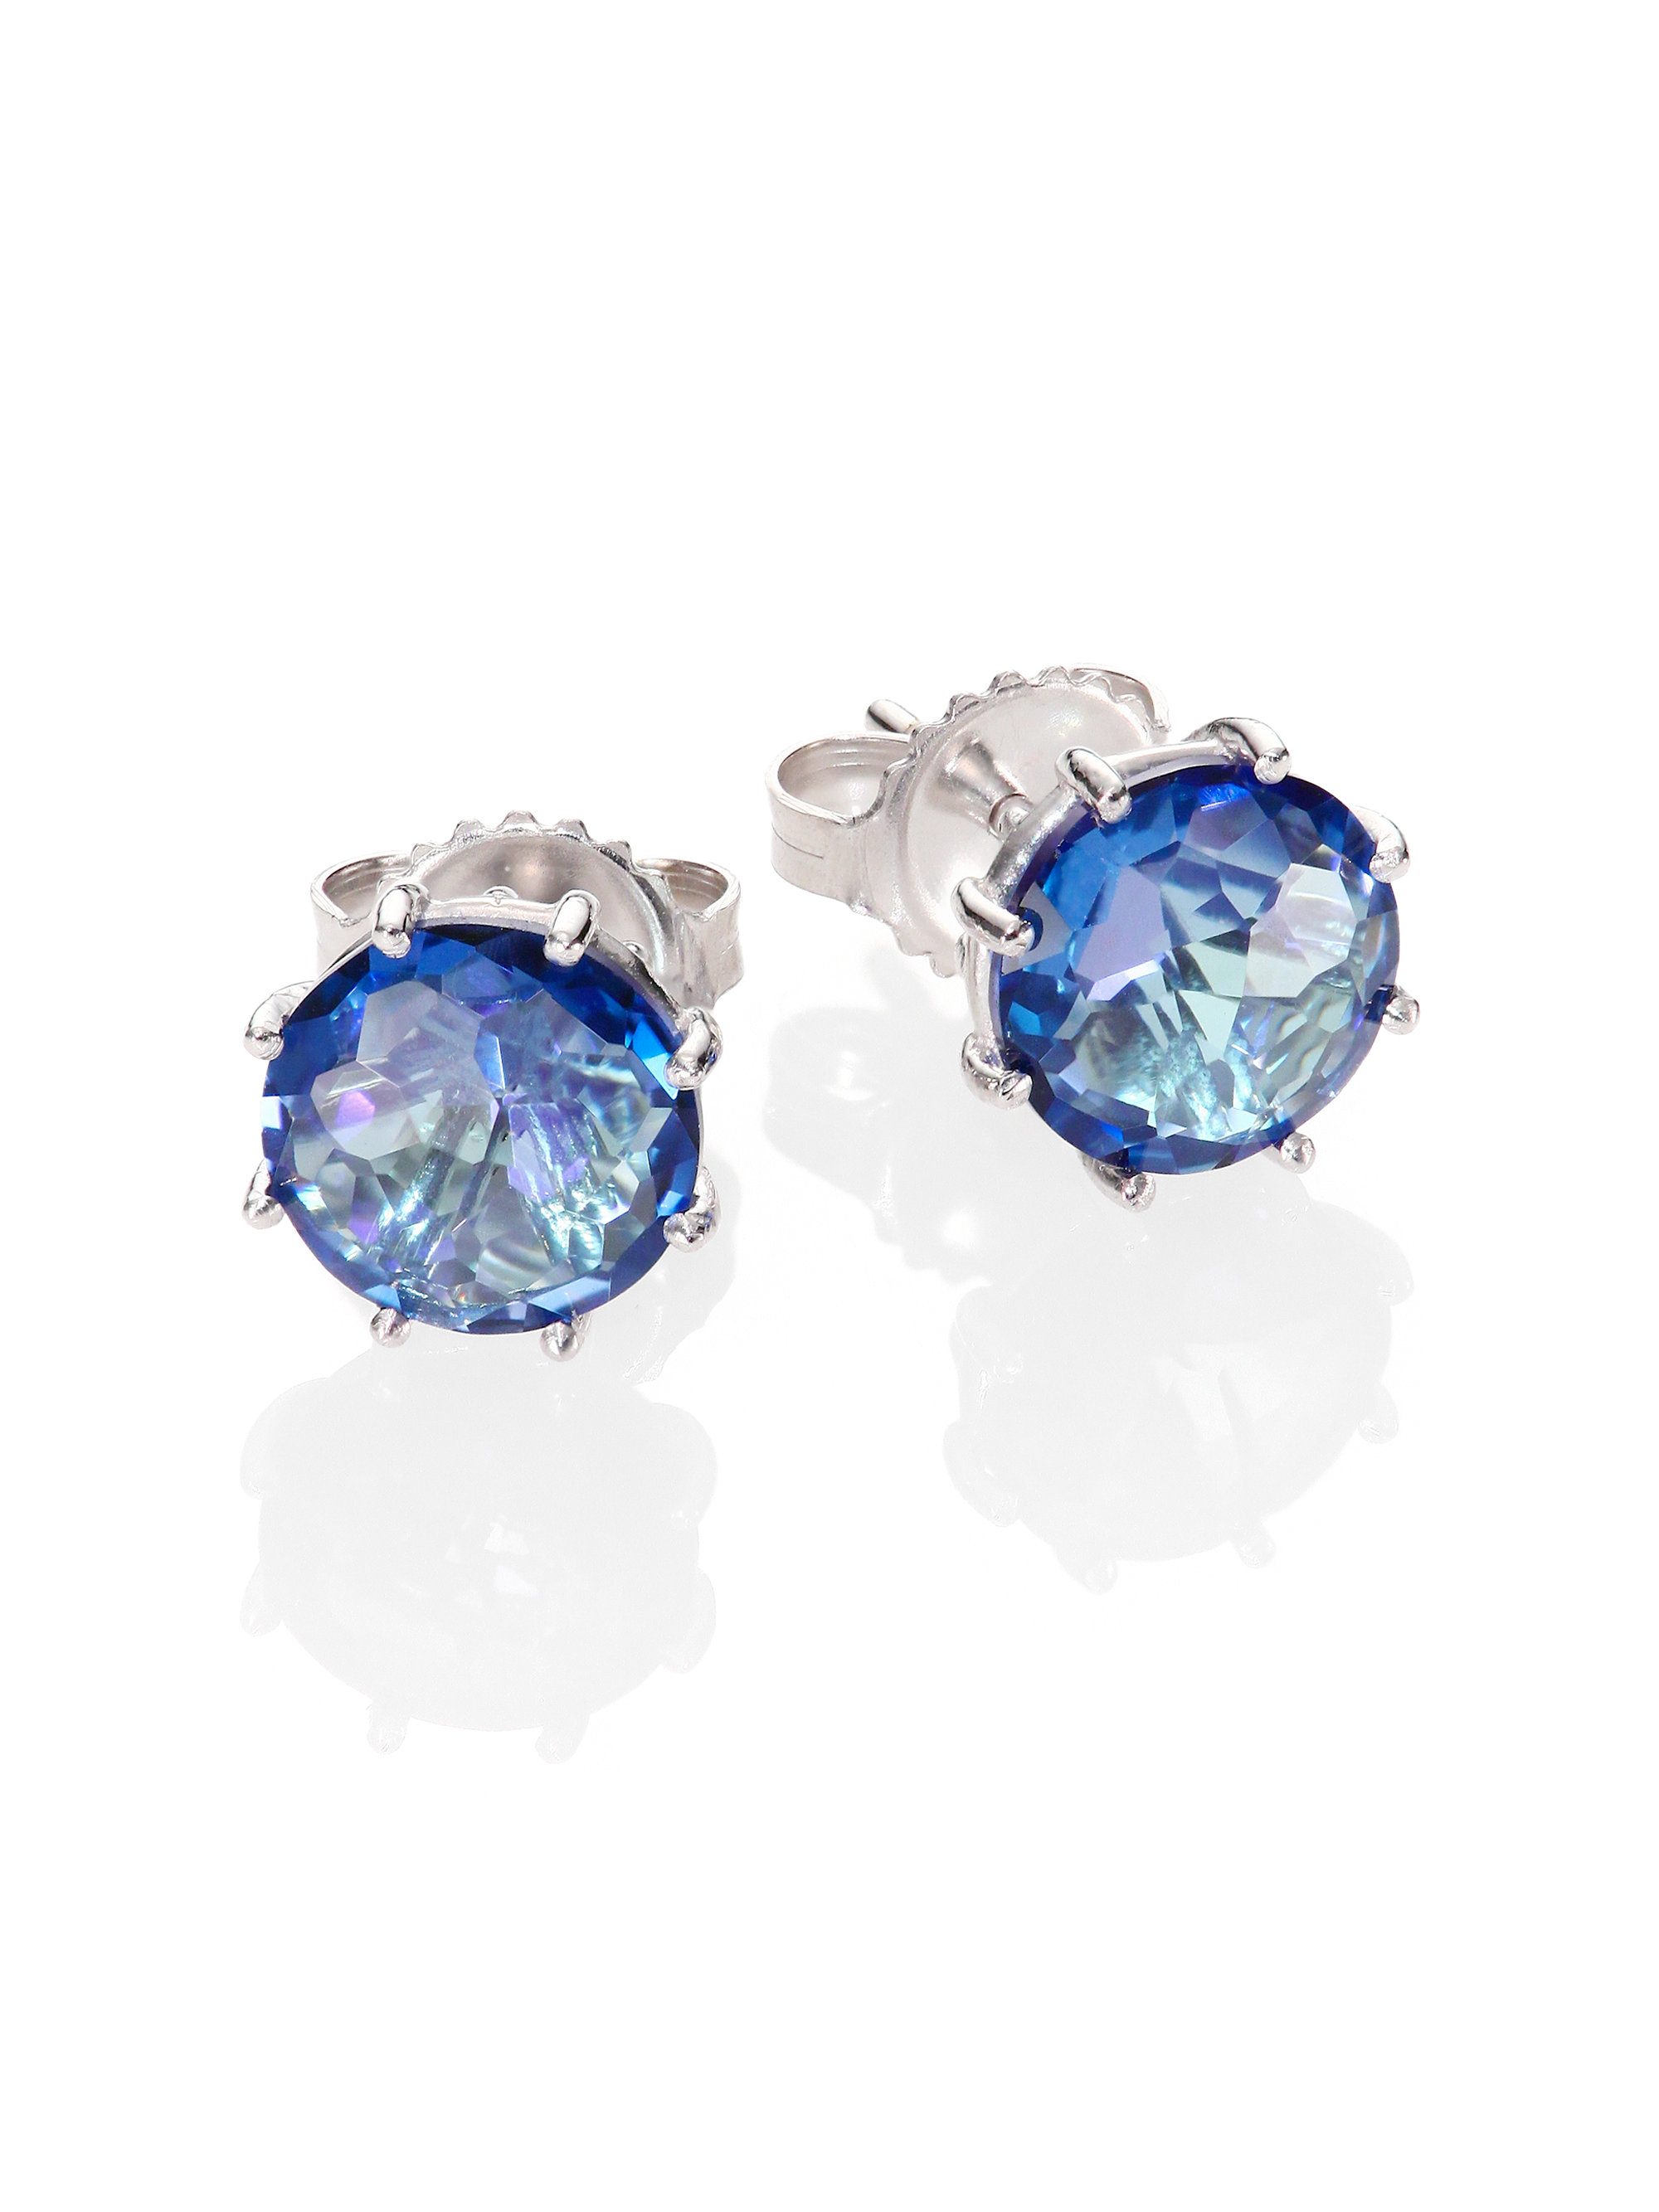 kalan earrings english gallery lyst diamond round blue gold topaz white jewelry stud suzanne normal product by